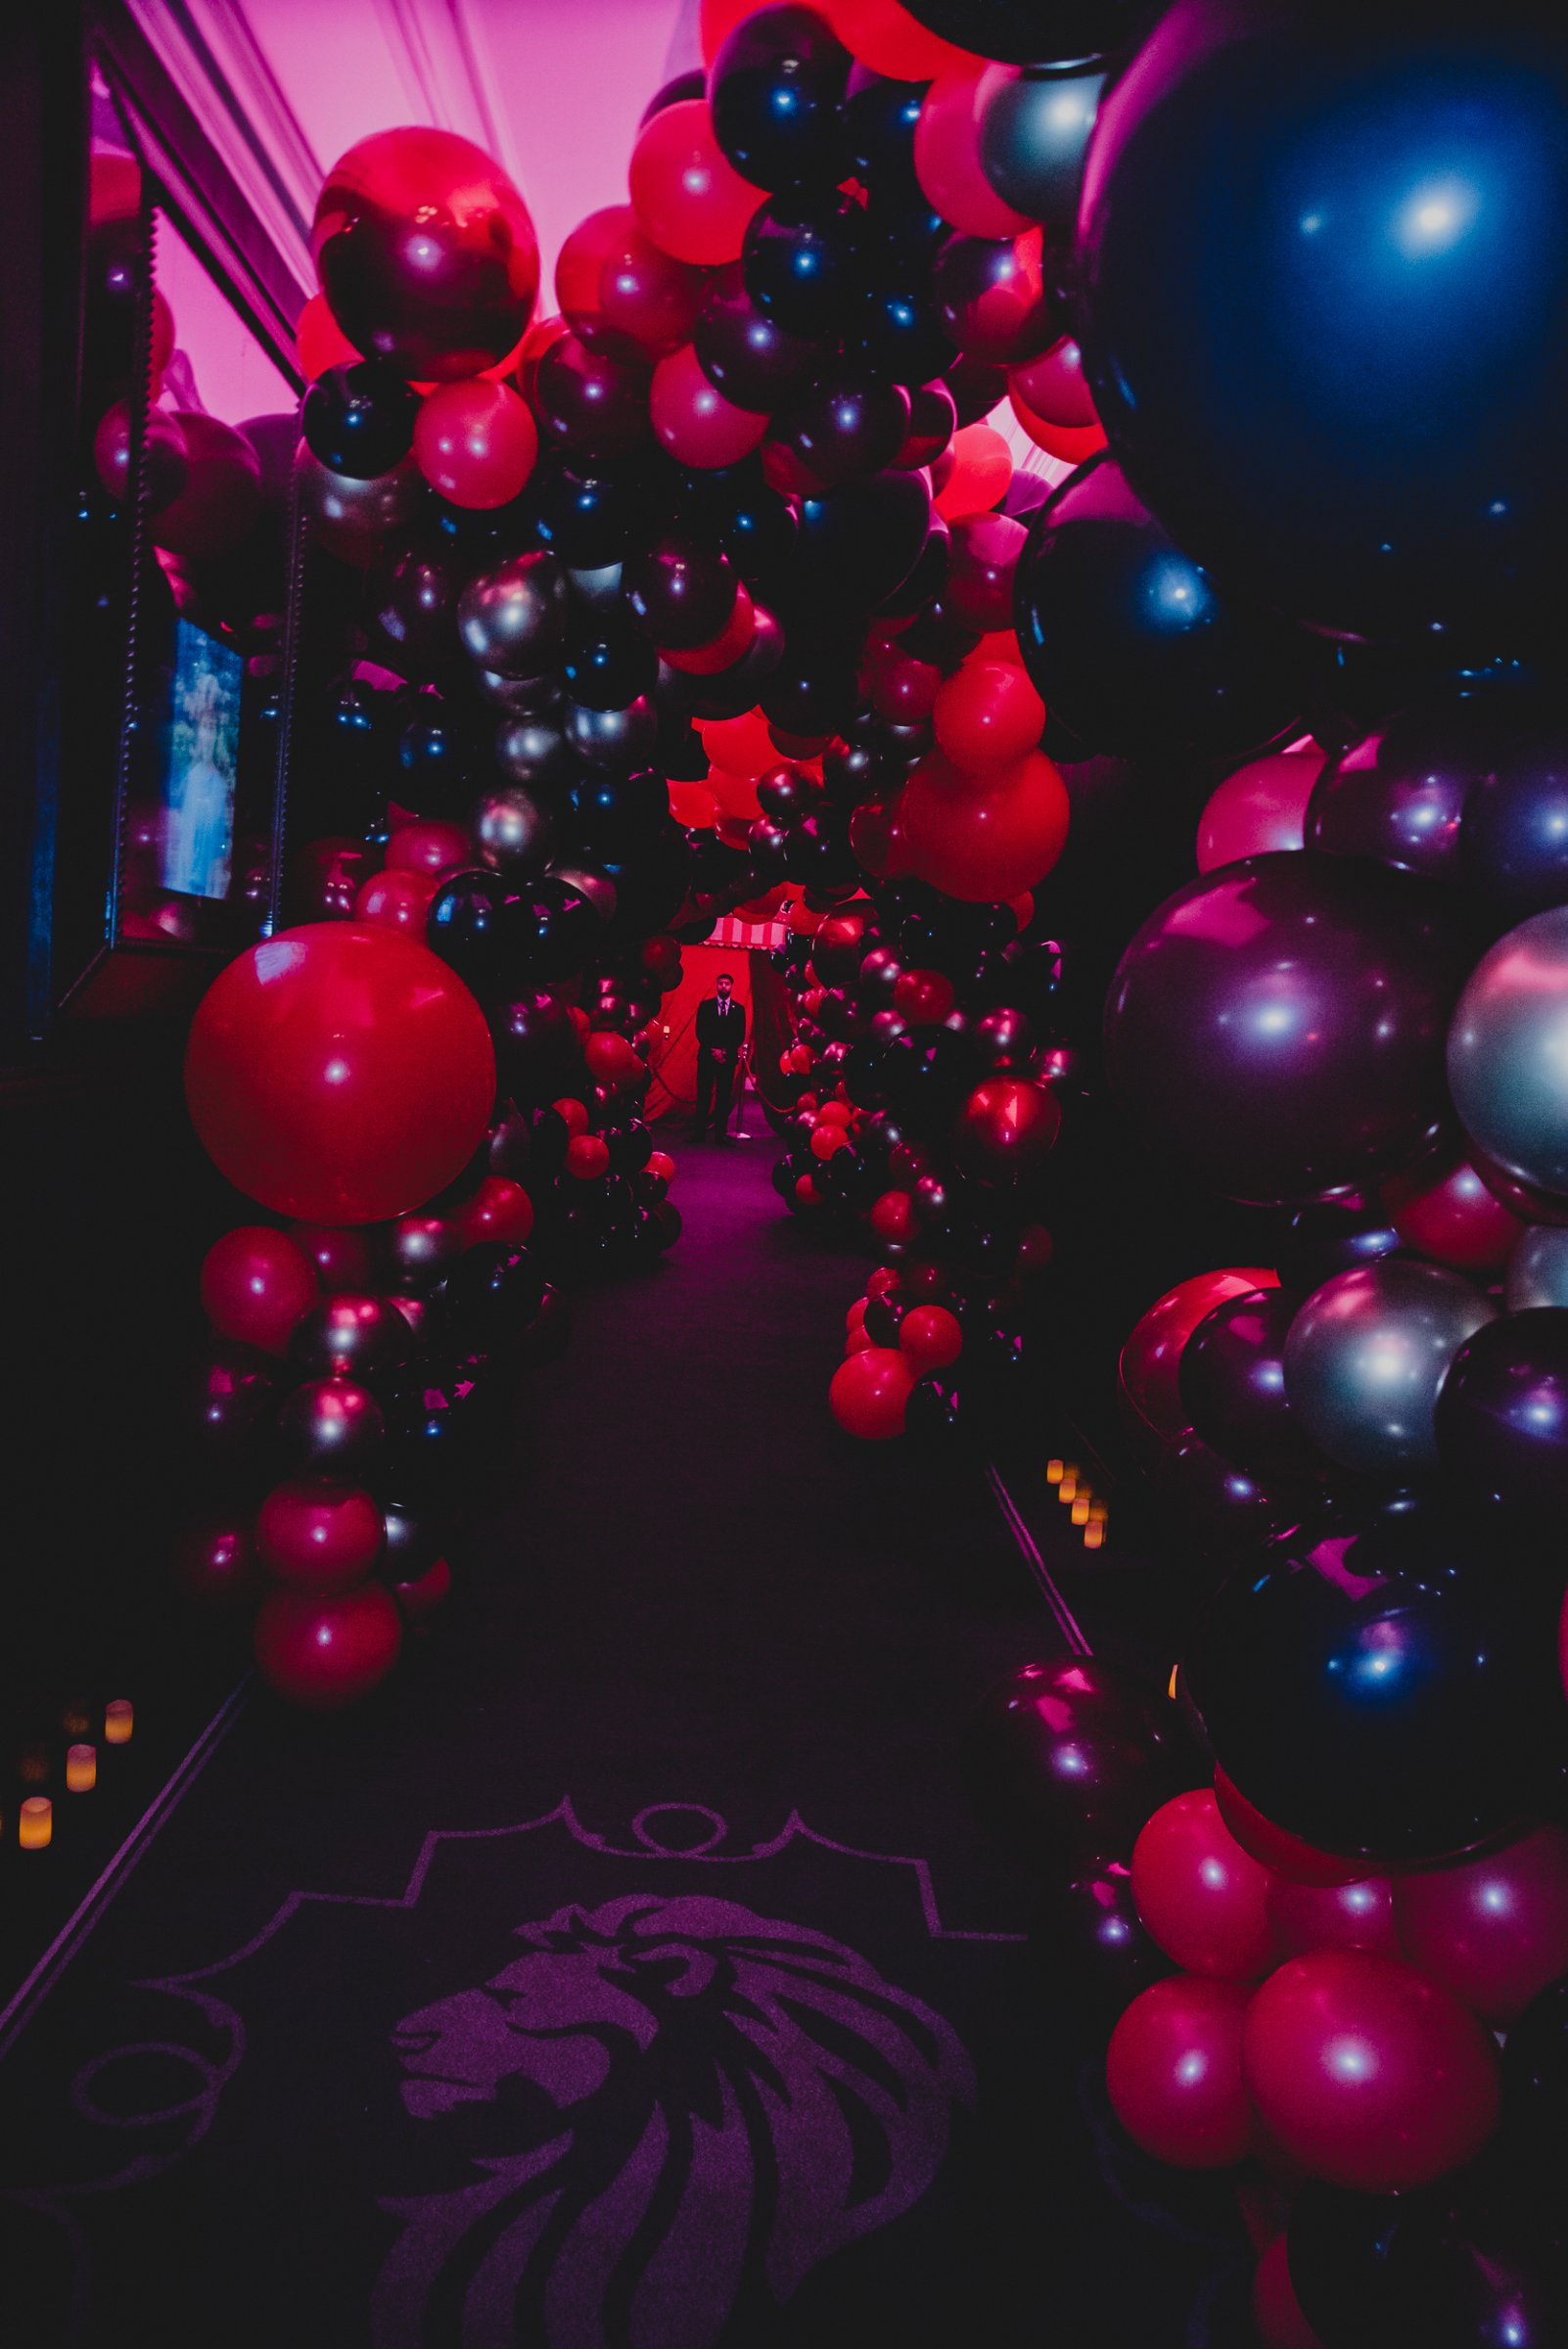 Balloon Entrance Tunnel